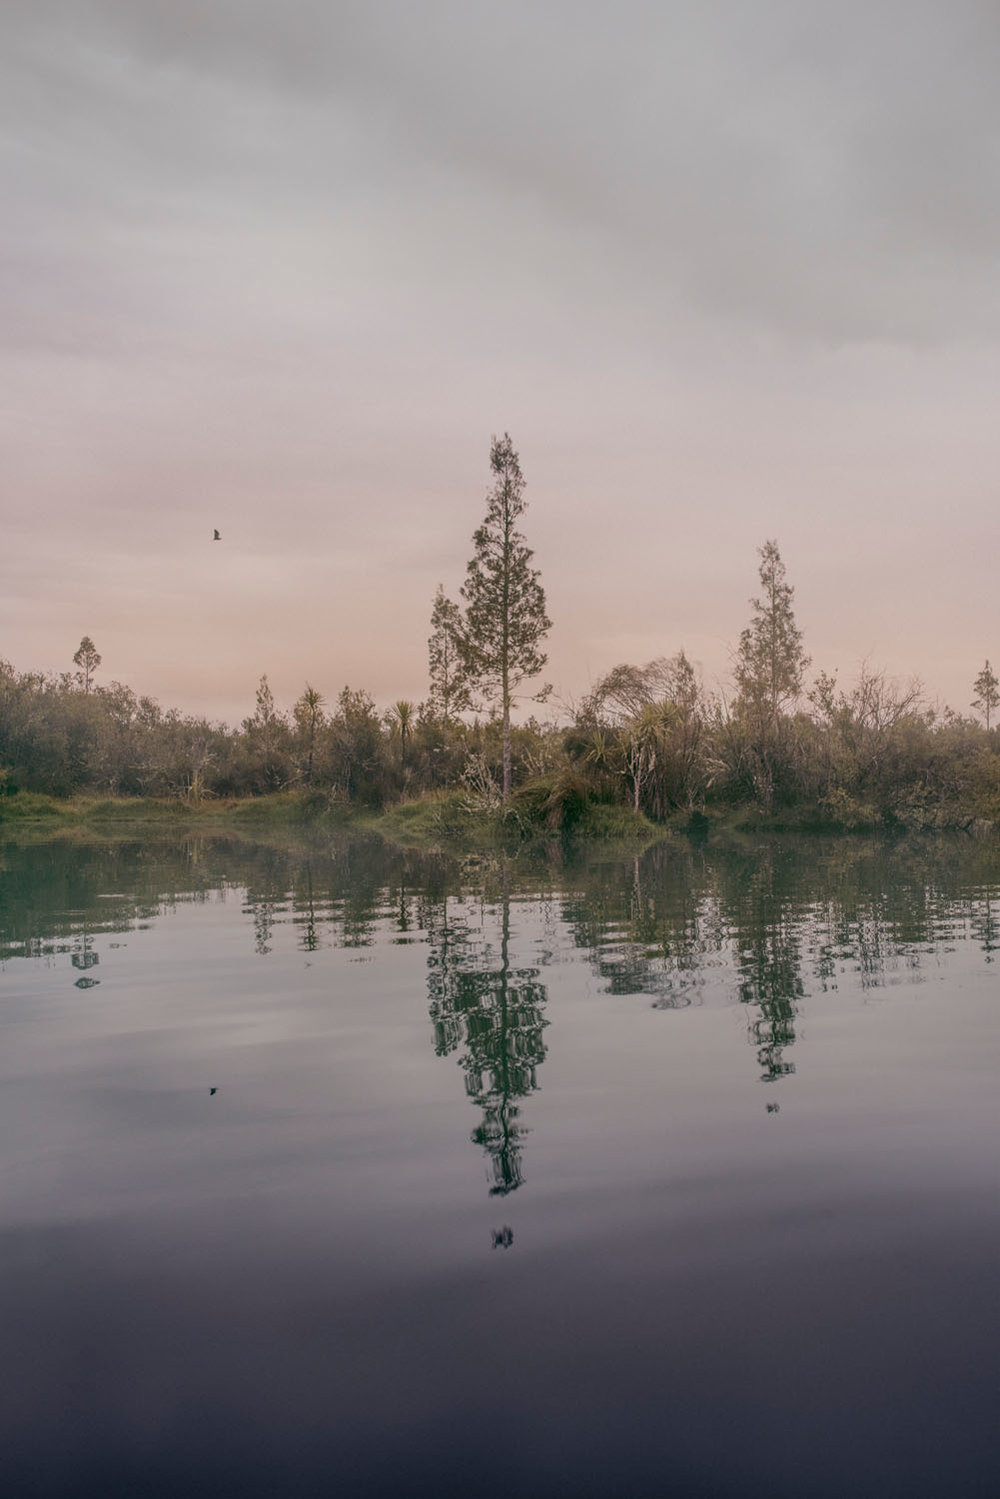 Kate van der Drift ,  Young Kahikatea, Northern Large Pond , 2018, archival pigment print on matte photo rag, edition of 5, 1220mm x 814mm